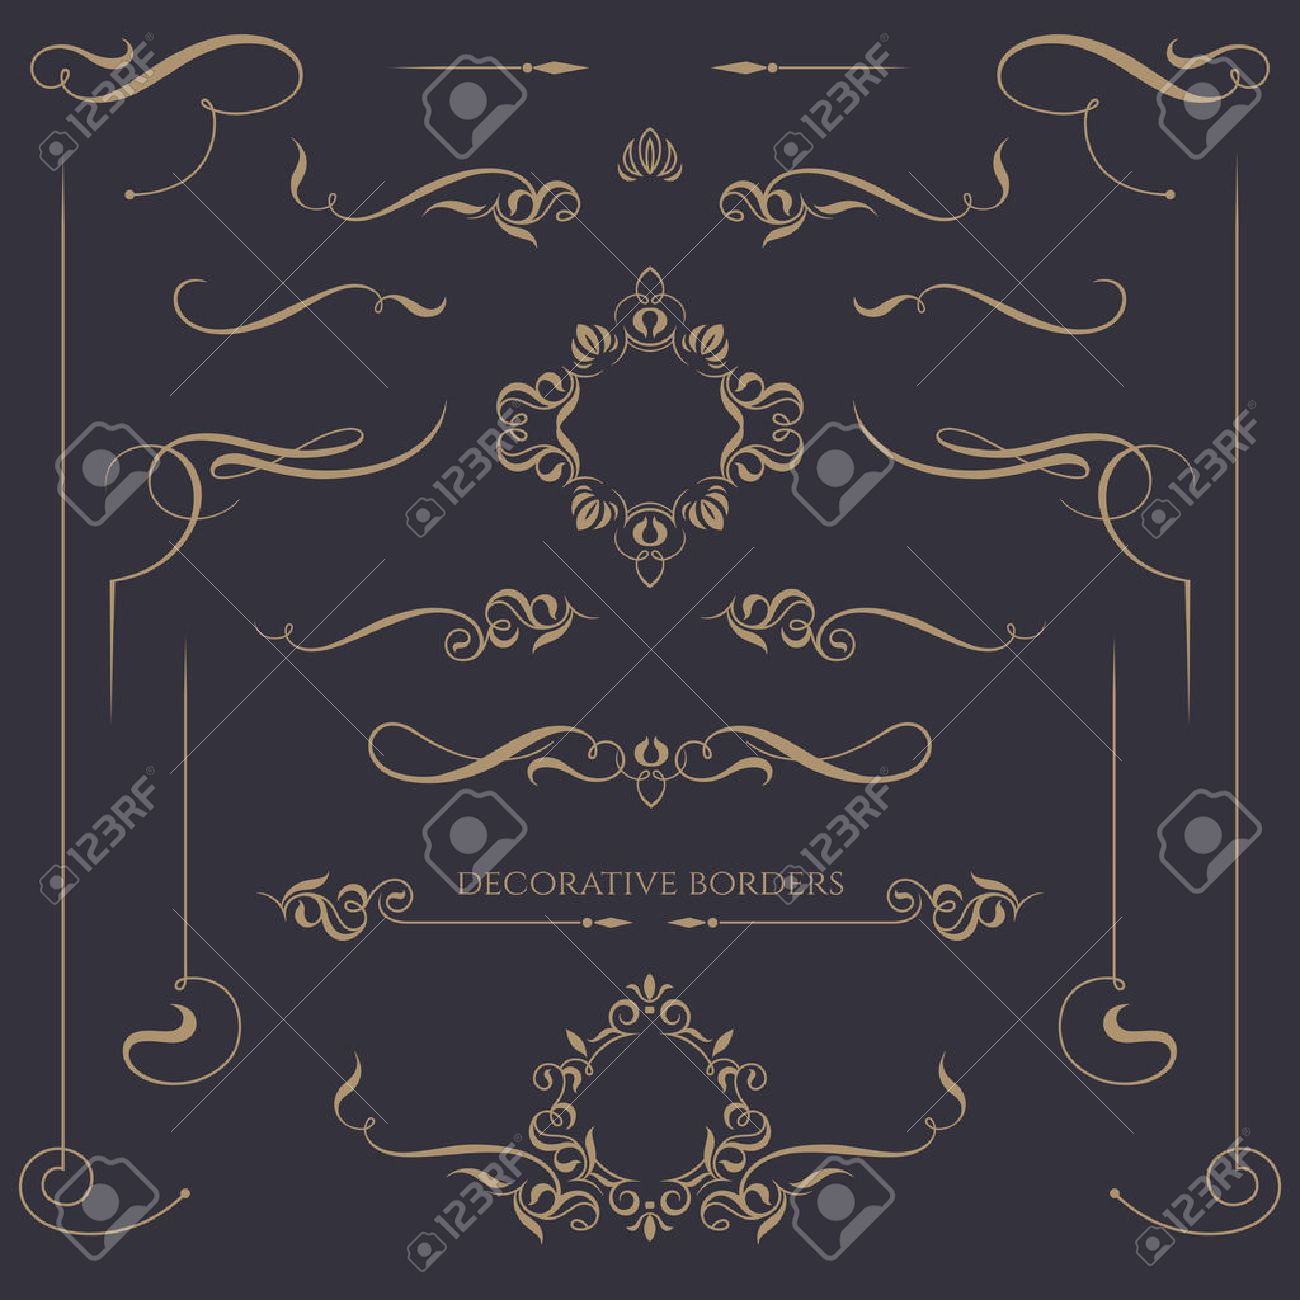 Decorative monograms and calligraphic borders. Template signage, labels, stickers, cards. Graphic design page. Classic design elements for wedding invitations. - 44264537